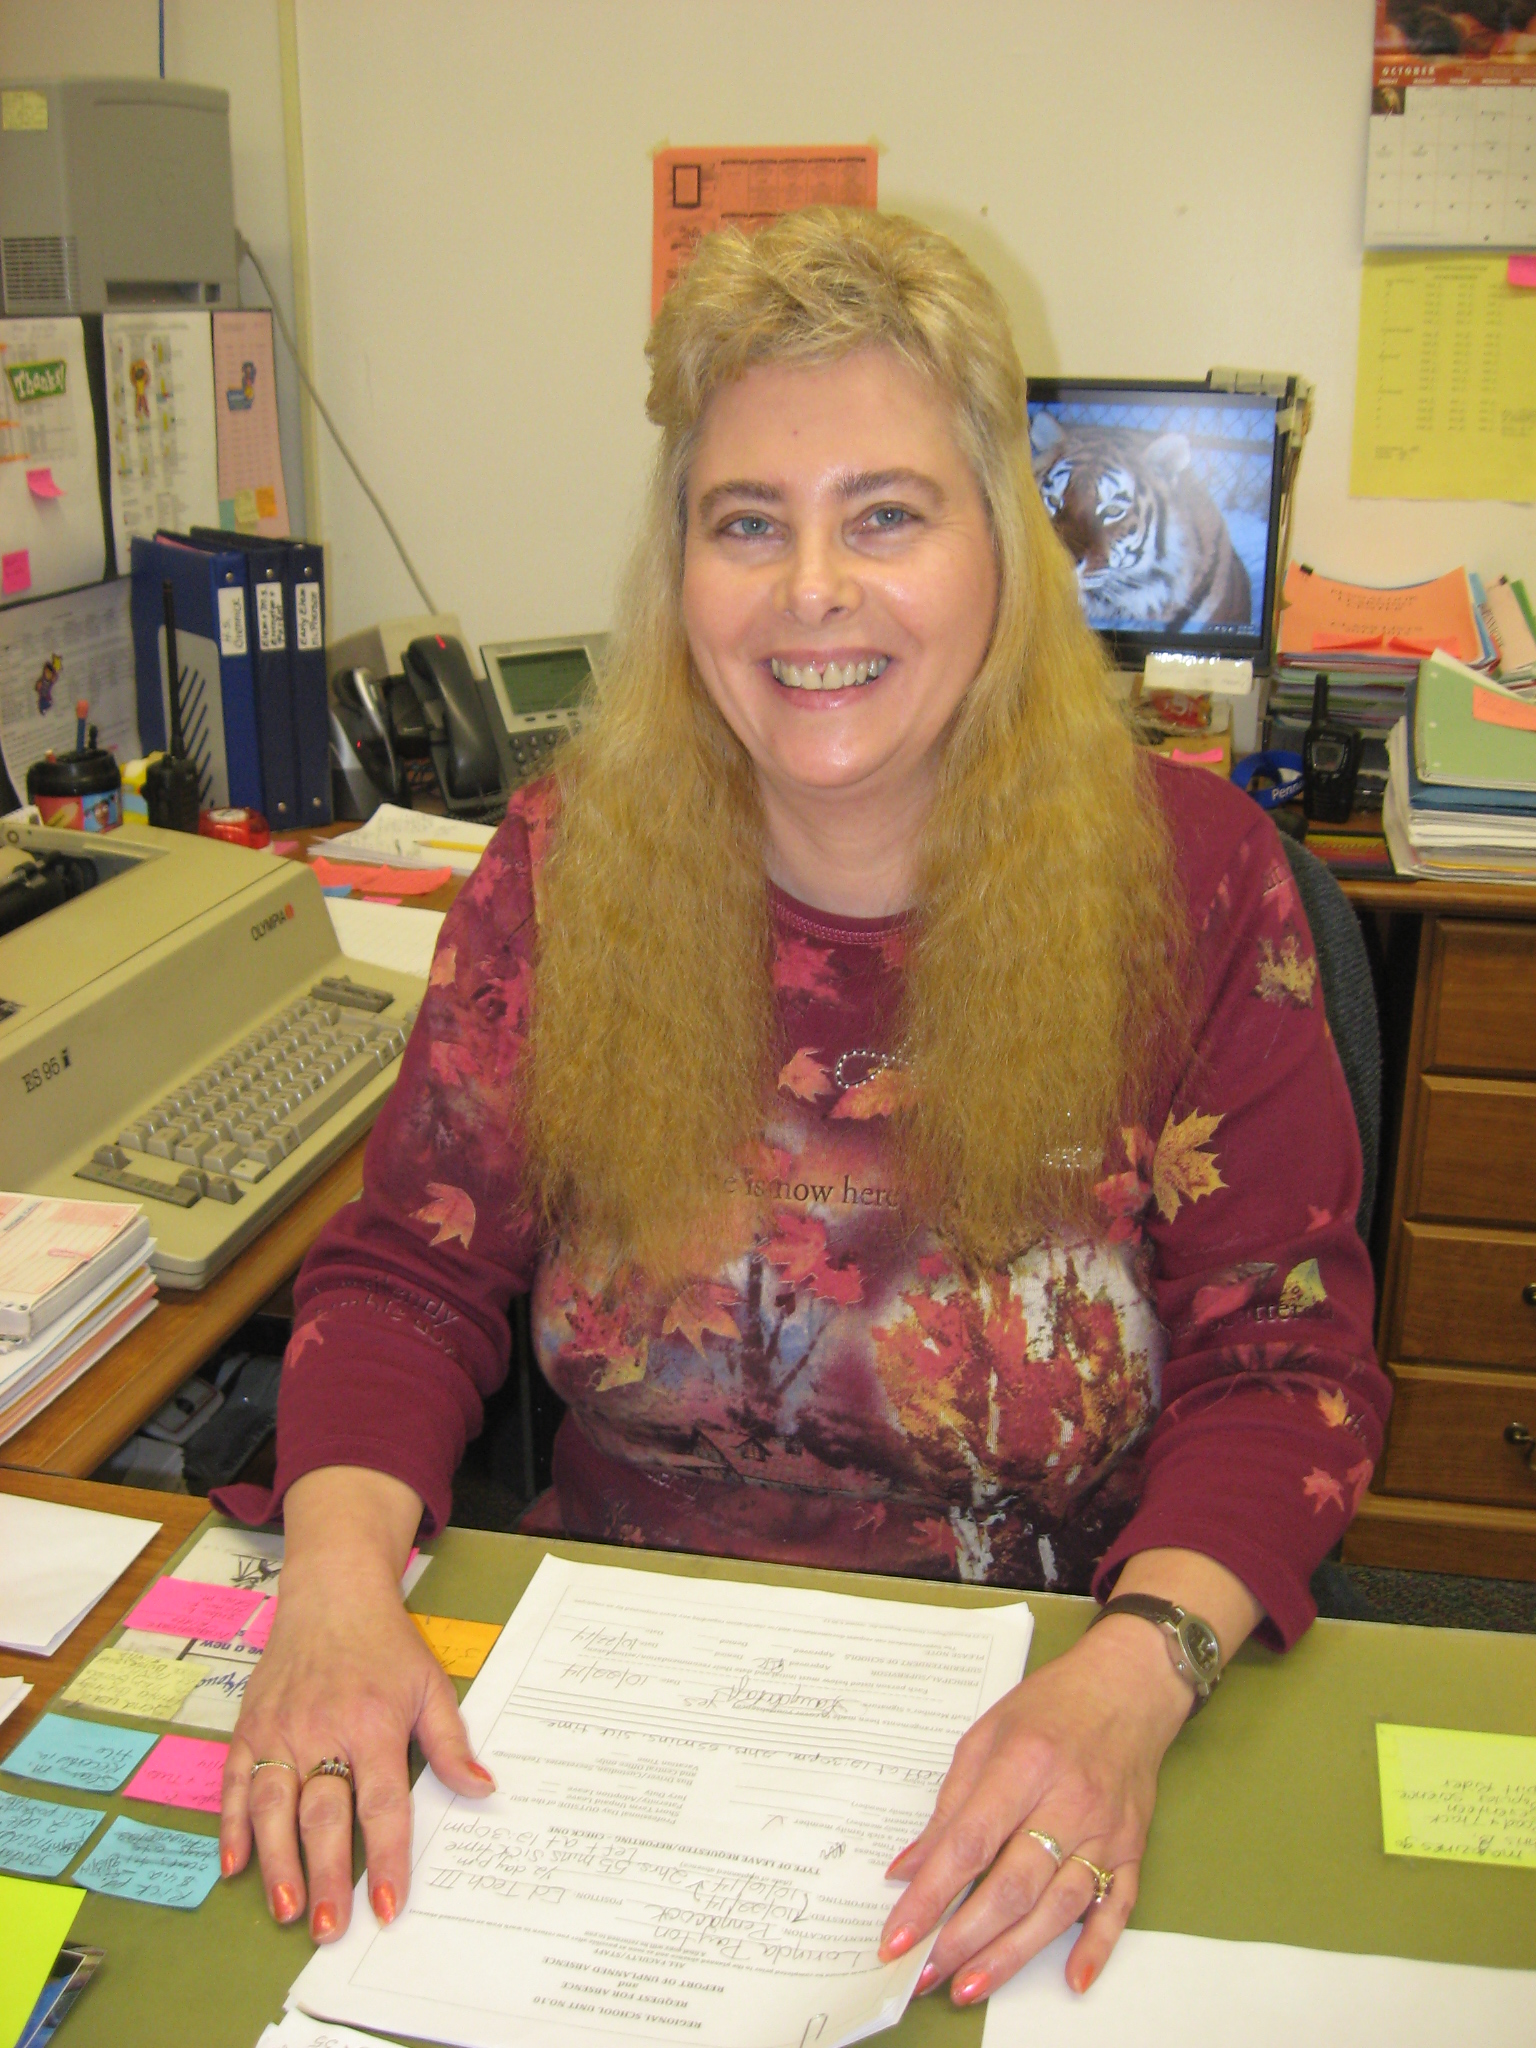 Fortin retires after 35 years on the job - Lewiston Sun Journal